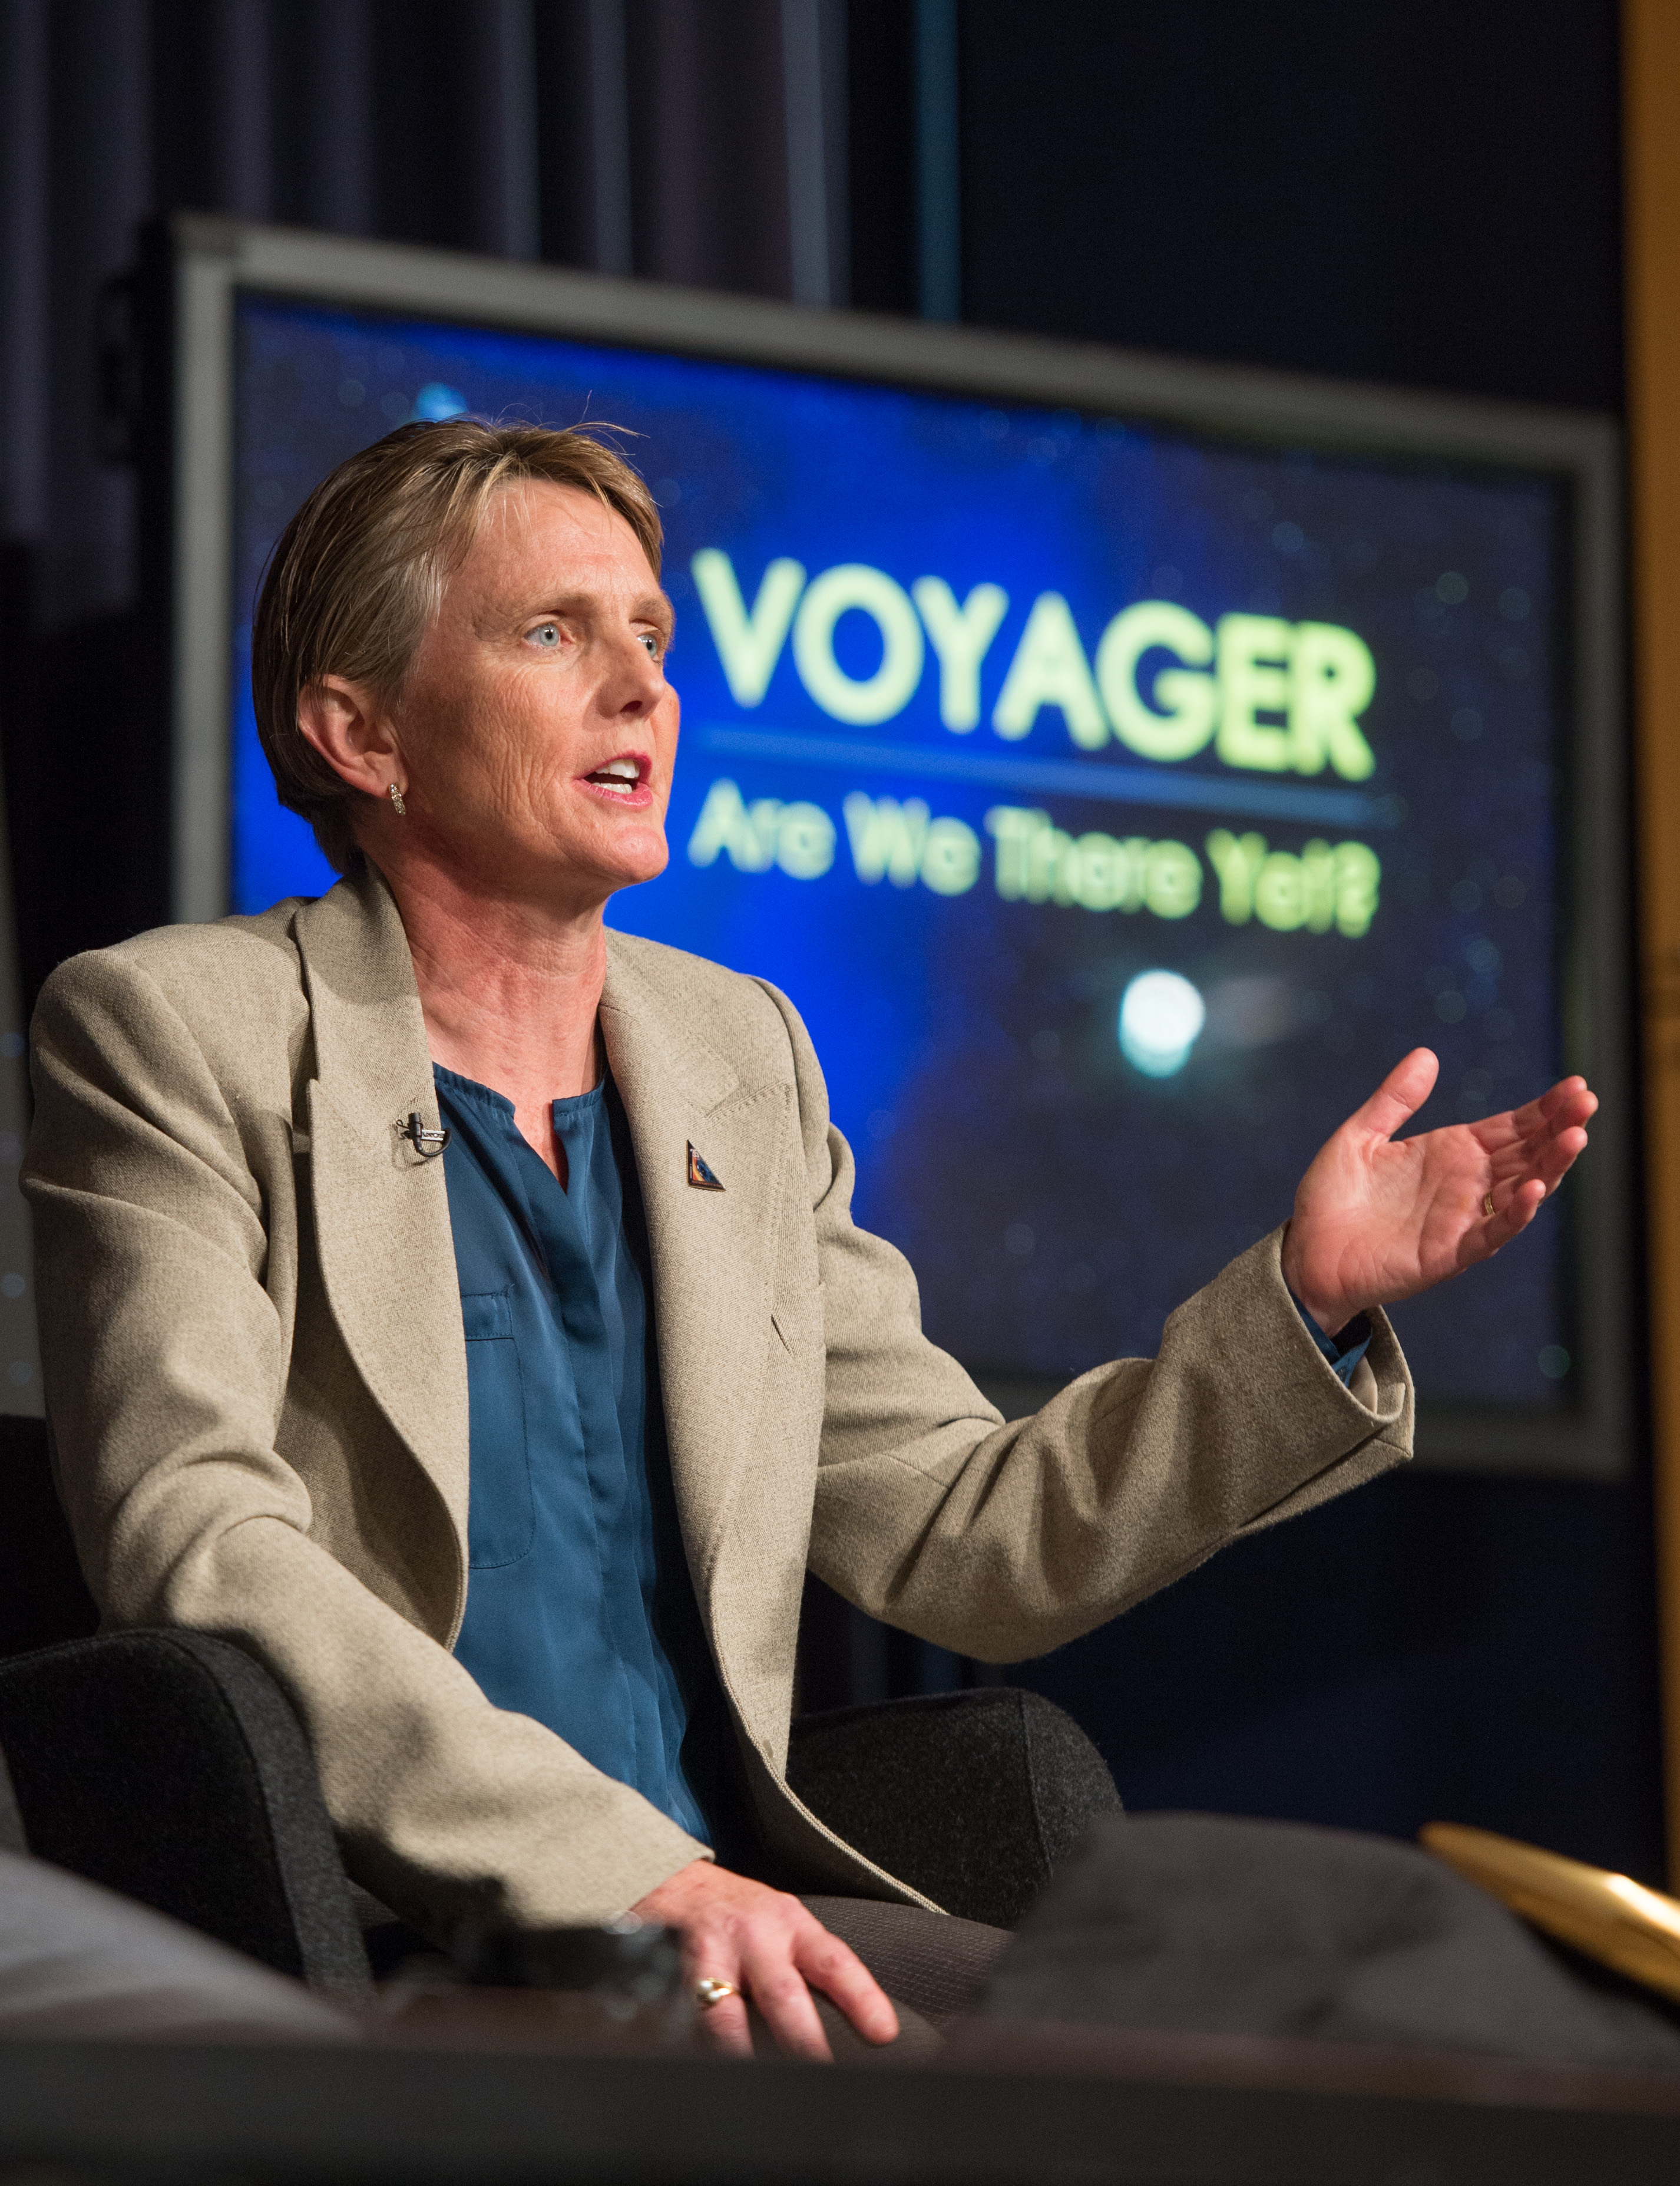 Sept. 12, 2013: Suzanne Dodd Speaks at Voyager 1 Press Conference